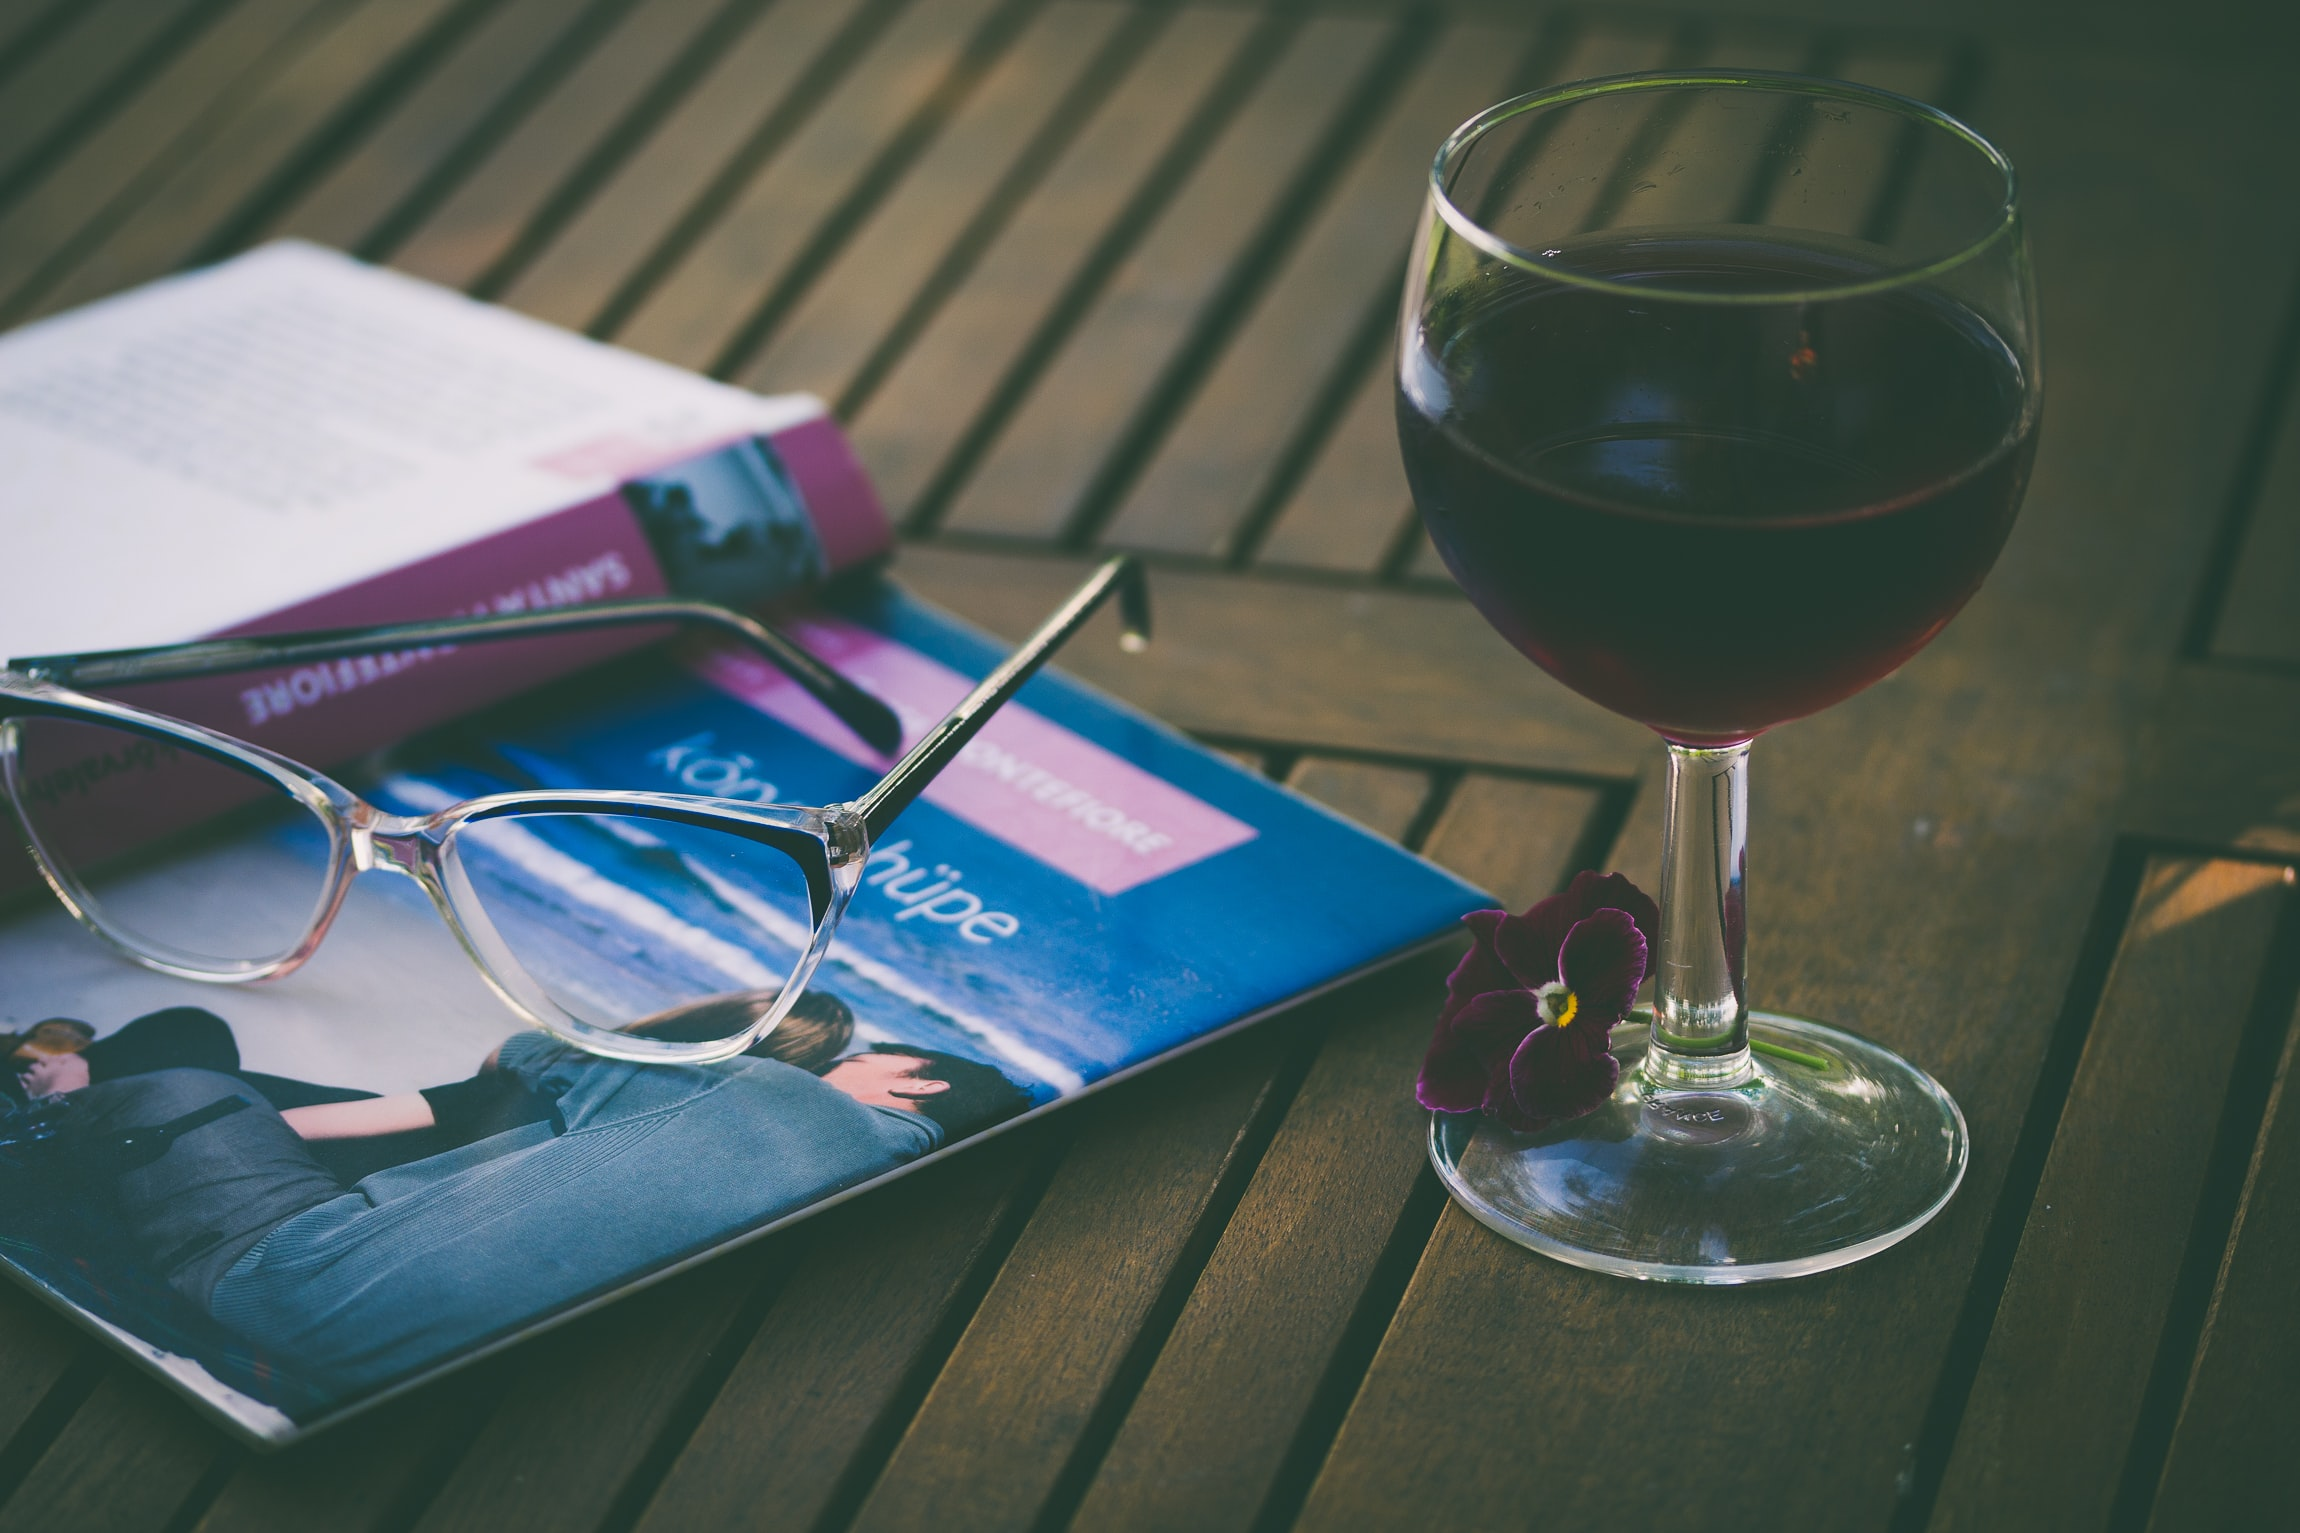 A glass of red wine on the table, along with a pair of eyeglasses and a book.